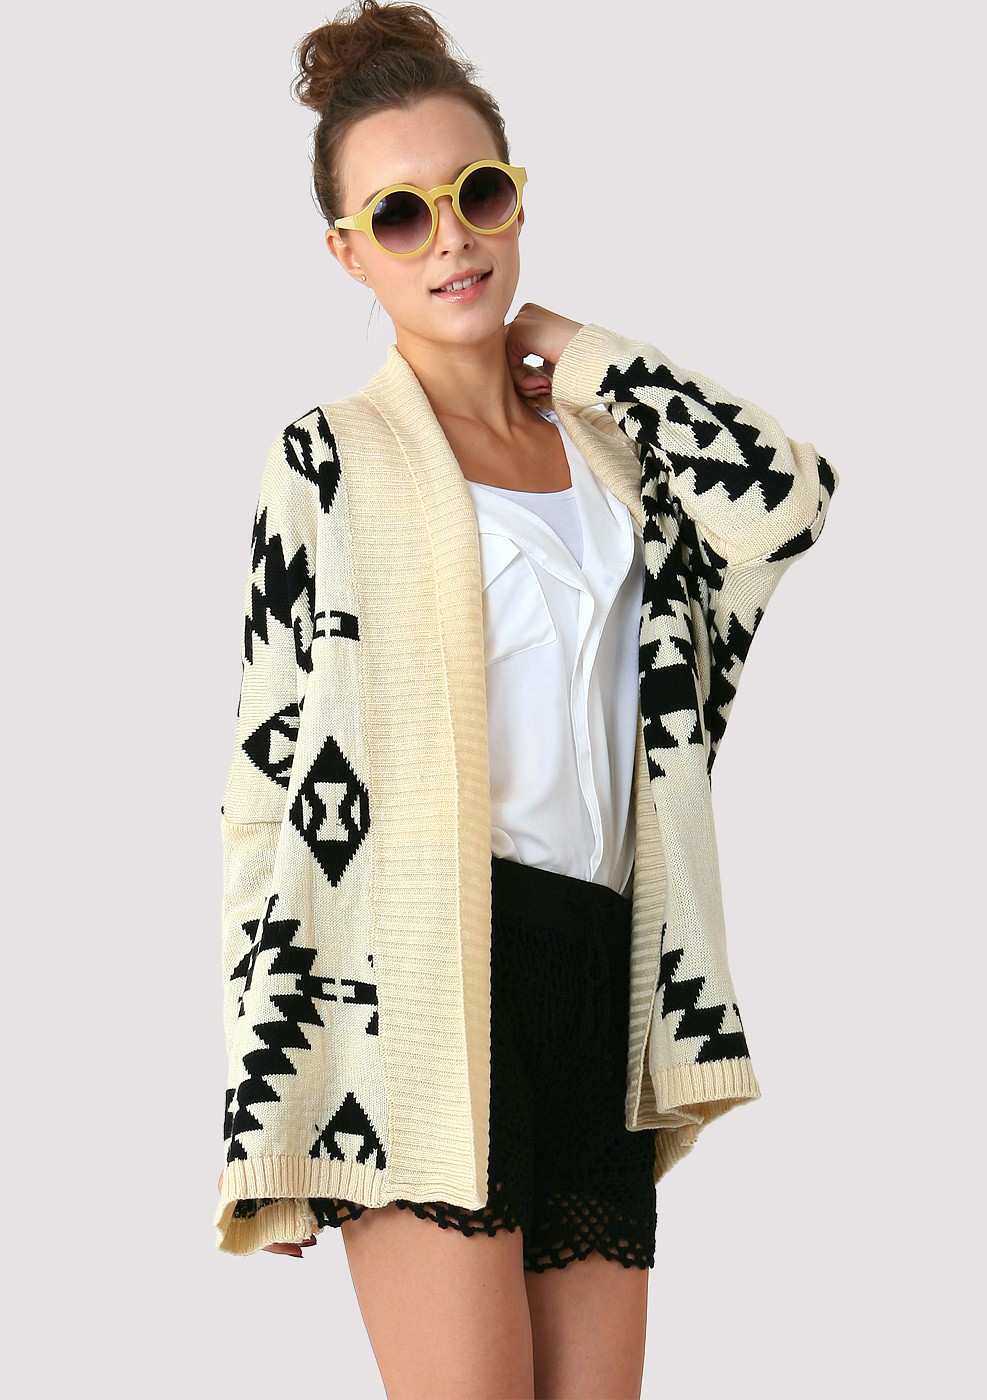 You searched for: aztec cardigan! Etsy is the home to thousands of handmade, vintage, and one-of-a-kind products and gifts related to your search. No matter what you're looking for or where you are in the world, our global marketplace of sellers can help you find unique and affordable options. Let's get started!